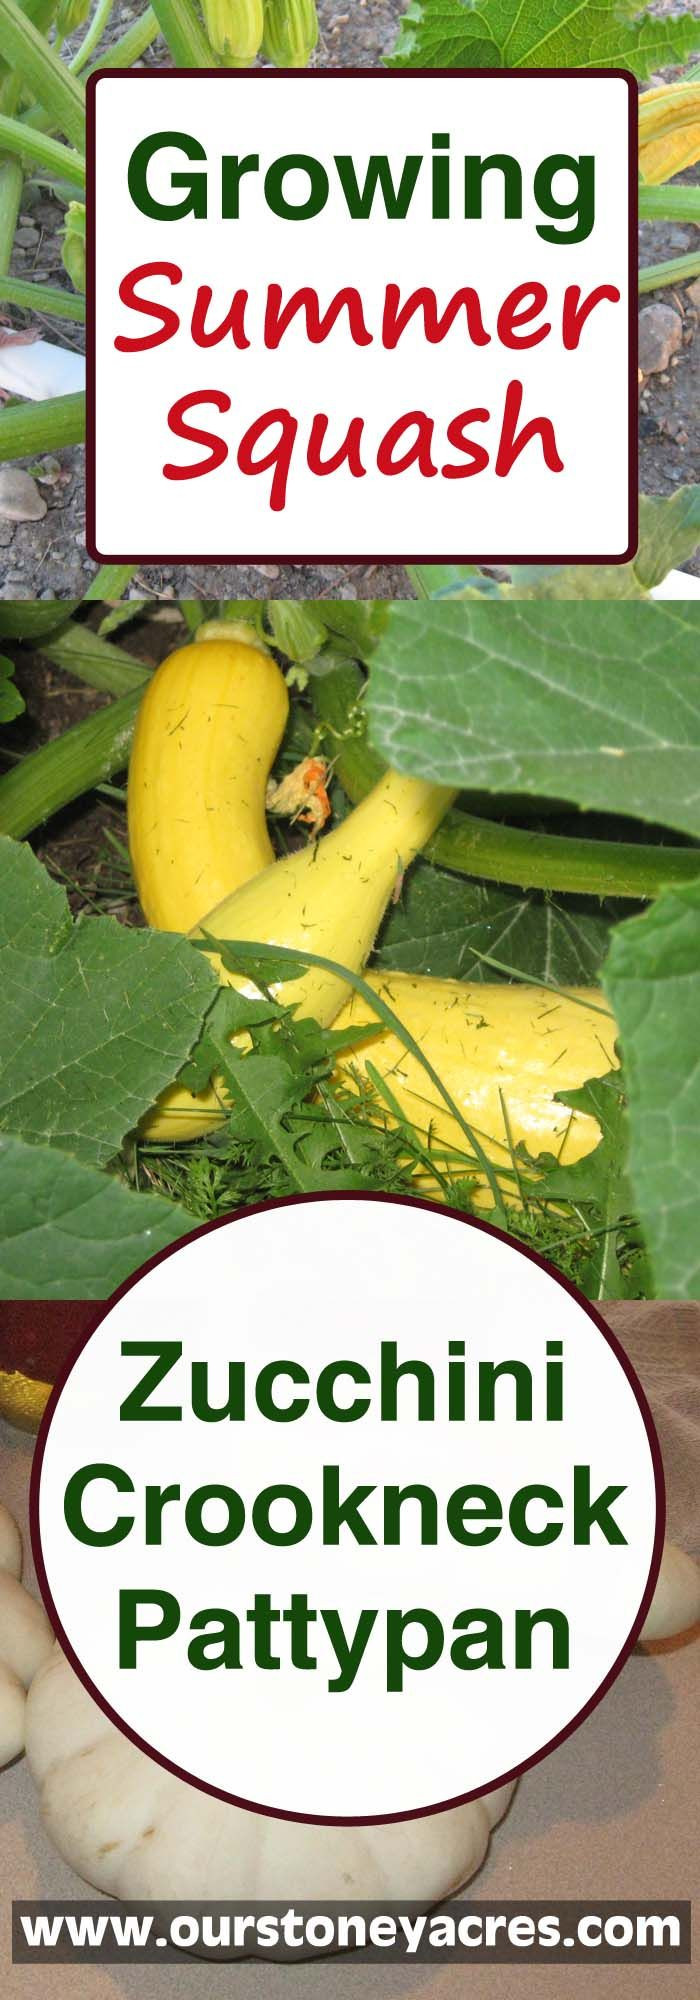 Growing Summer Squash is a great thing for many new gardeners to begin with.  These easy to grow and productive squashes are a great addition to any garden!